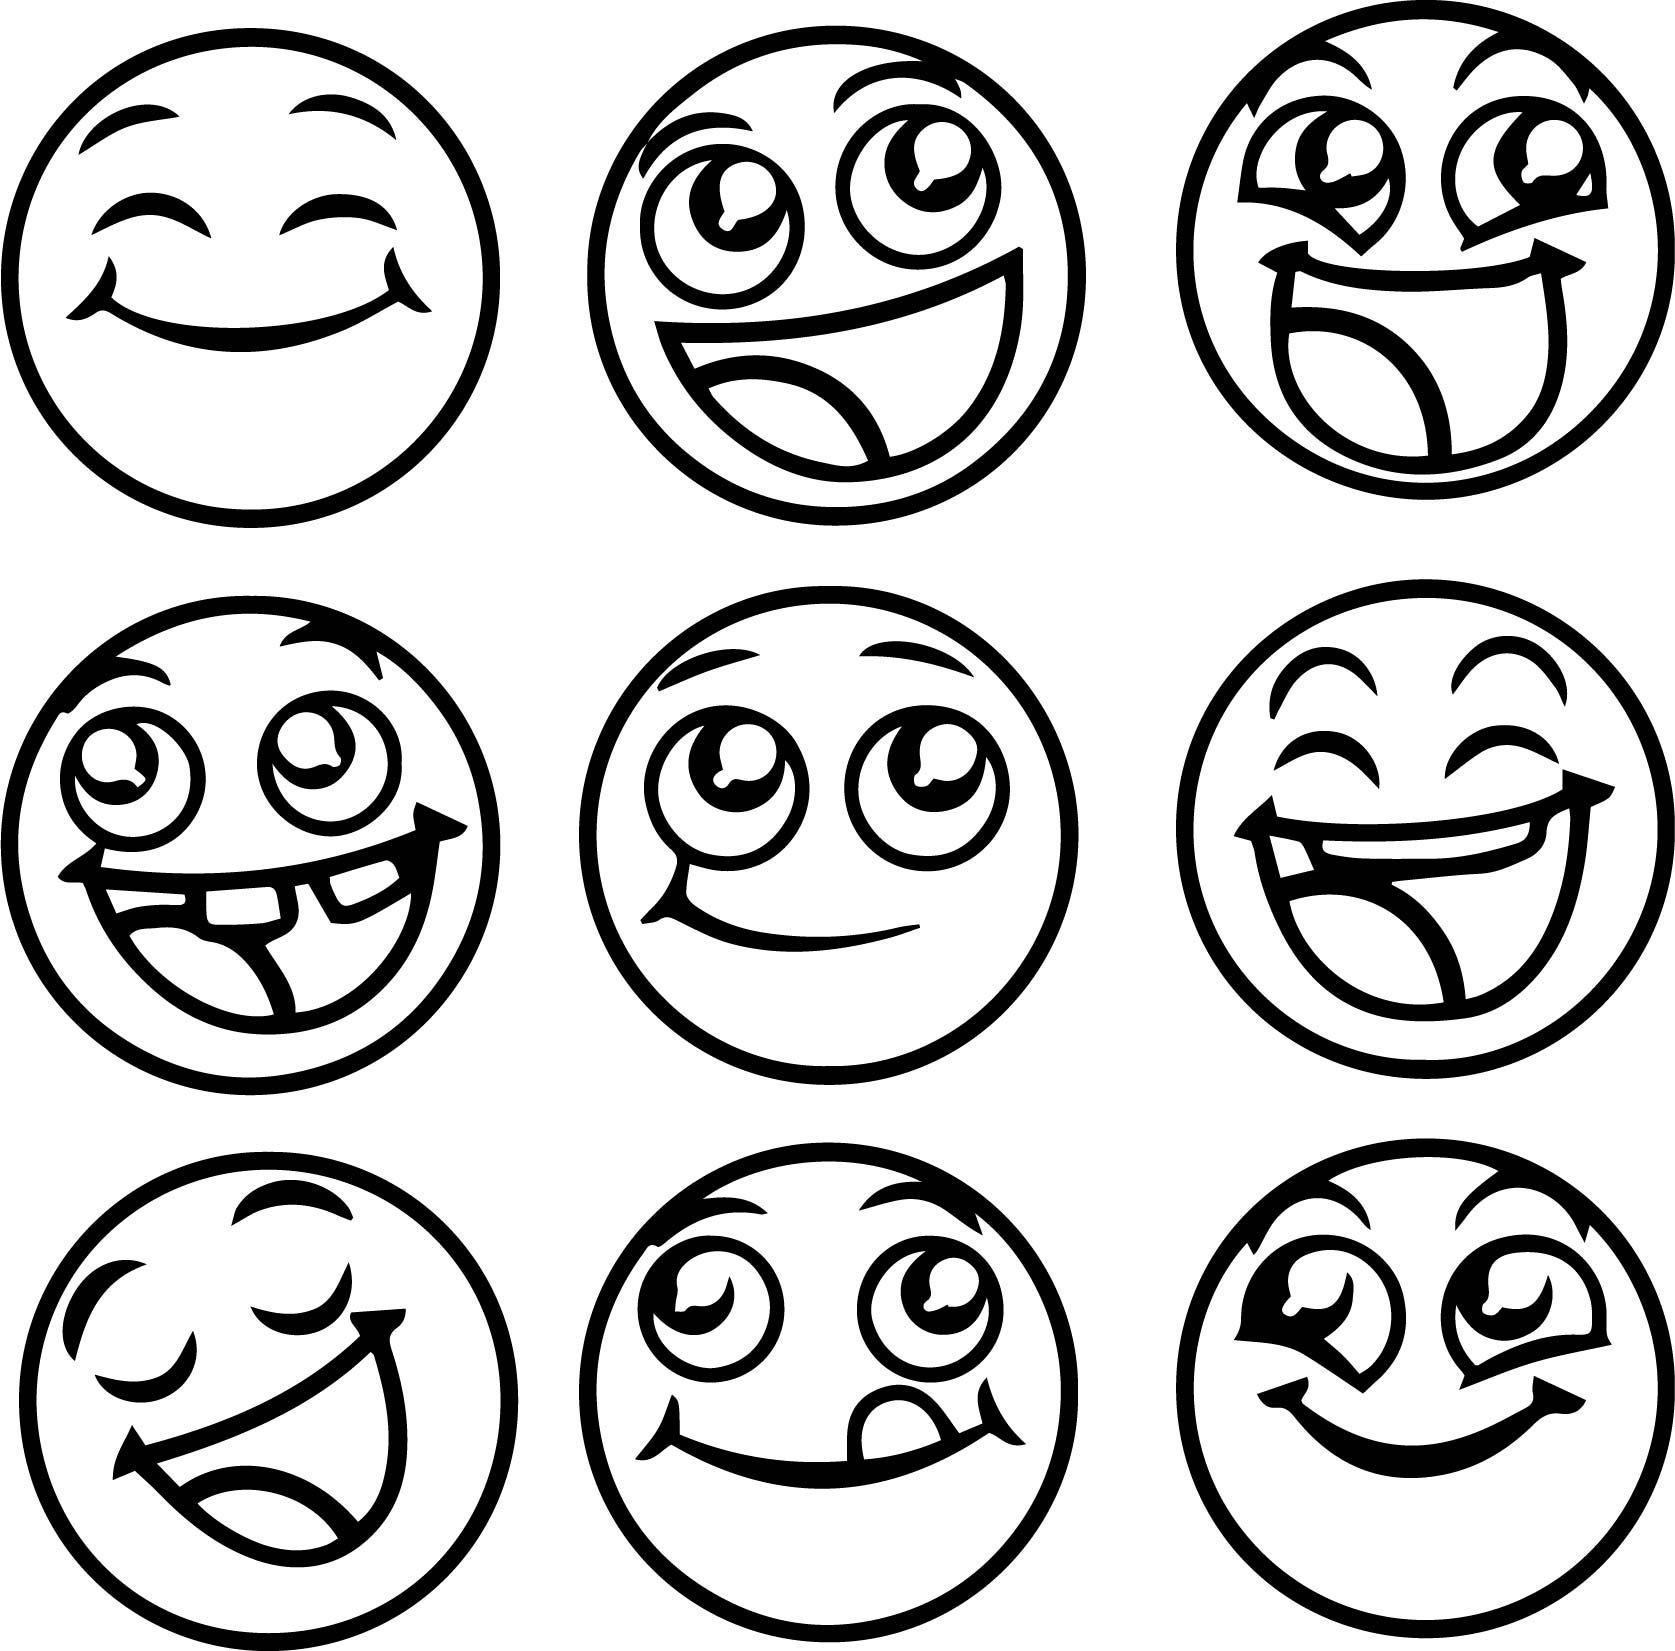 16 Printable Colouring Pages Emoji Emoji Coloring Pages Printable Coloring Pages Coloring Pages